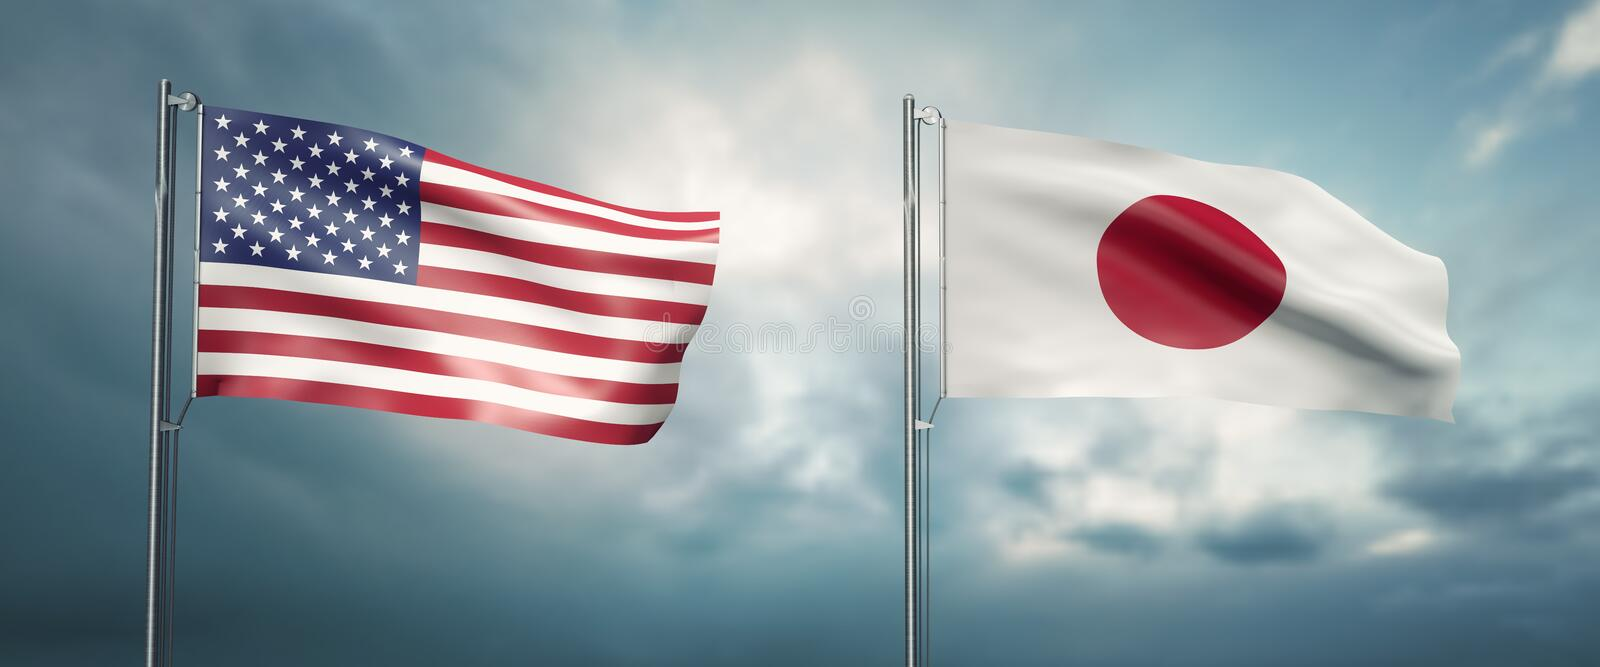 Two state flags of the united states of america and japan, facing each other and moving in the wind in front of cl. 3d illustration two state flags of the united royalty free illustration